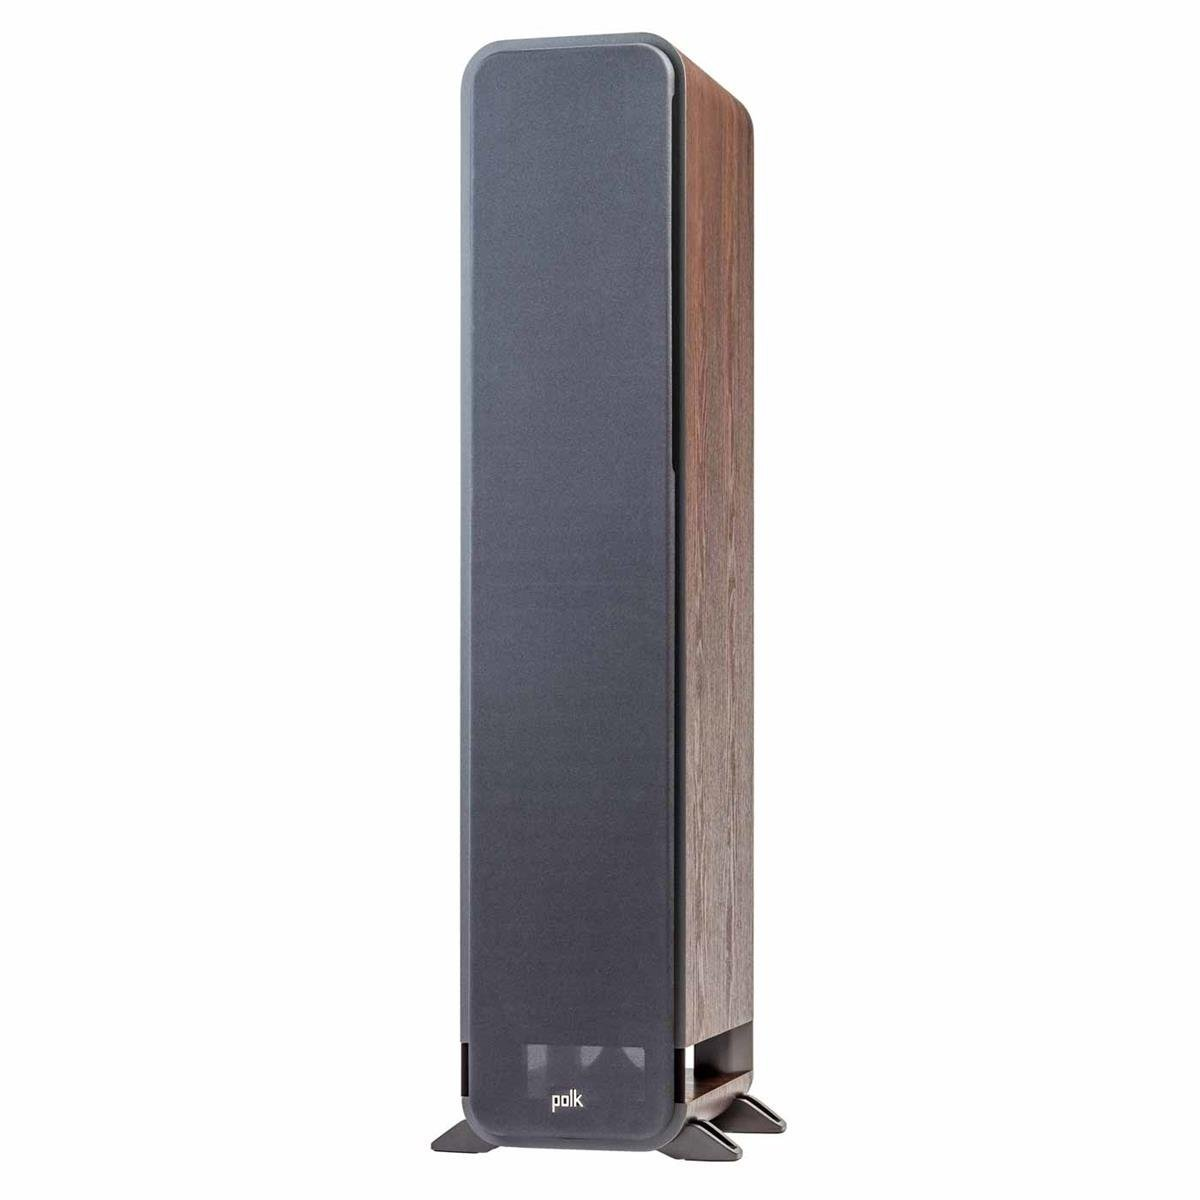 Polk Audio Signature Series S55 American Hi-Fi Home Theater Medium Tower Speaker (Classic Brown Walnut) by Polk Audio